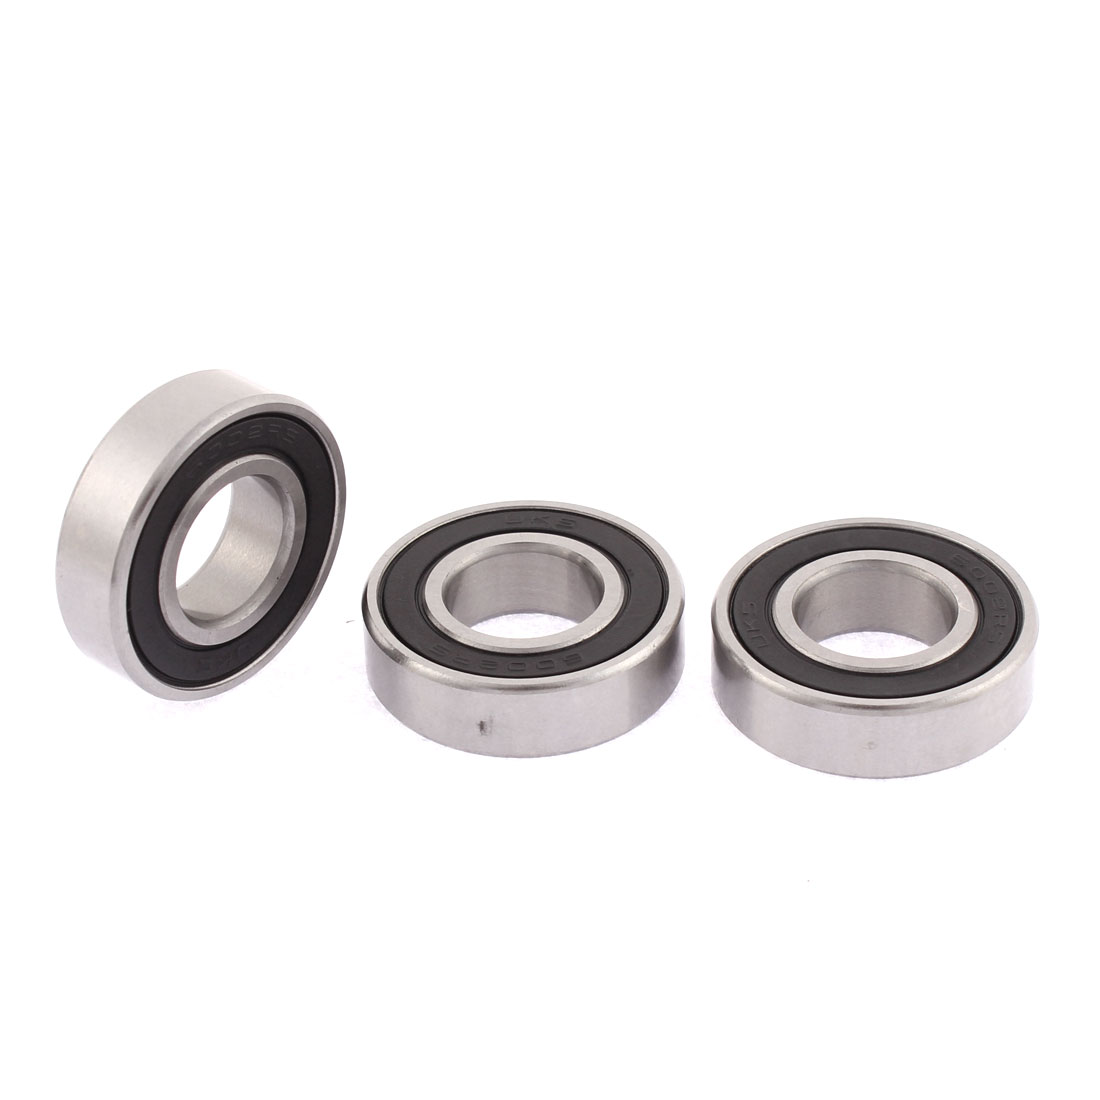 6002RS Double Side Seals Deep Groove Bearing Ball 15mm Inner Dia 3pcs